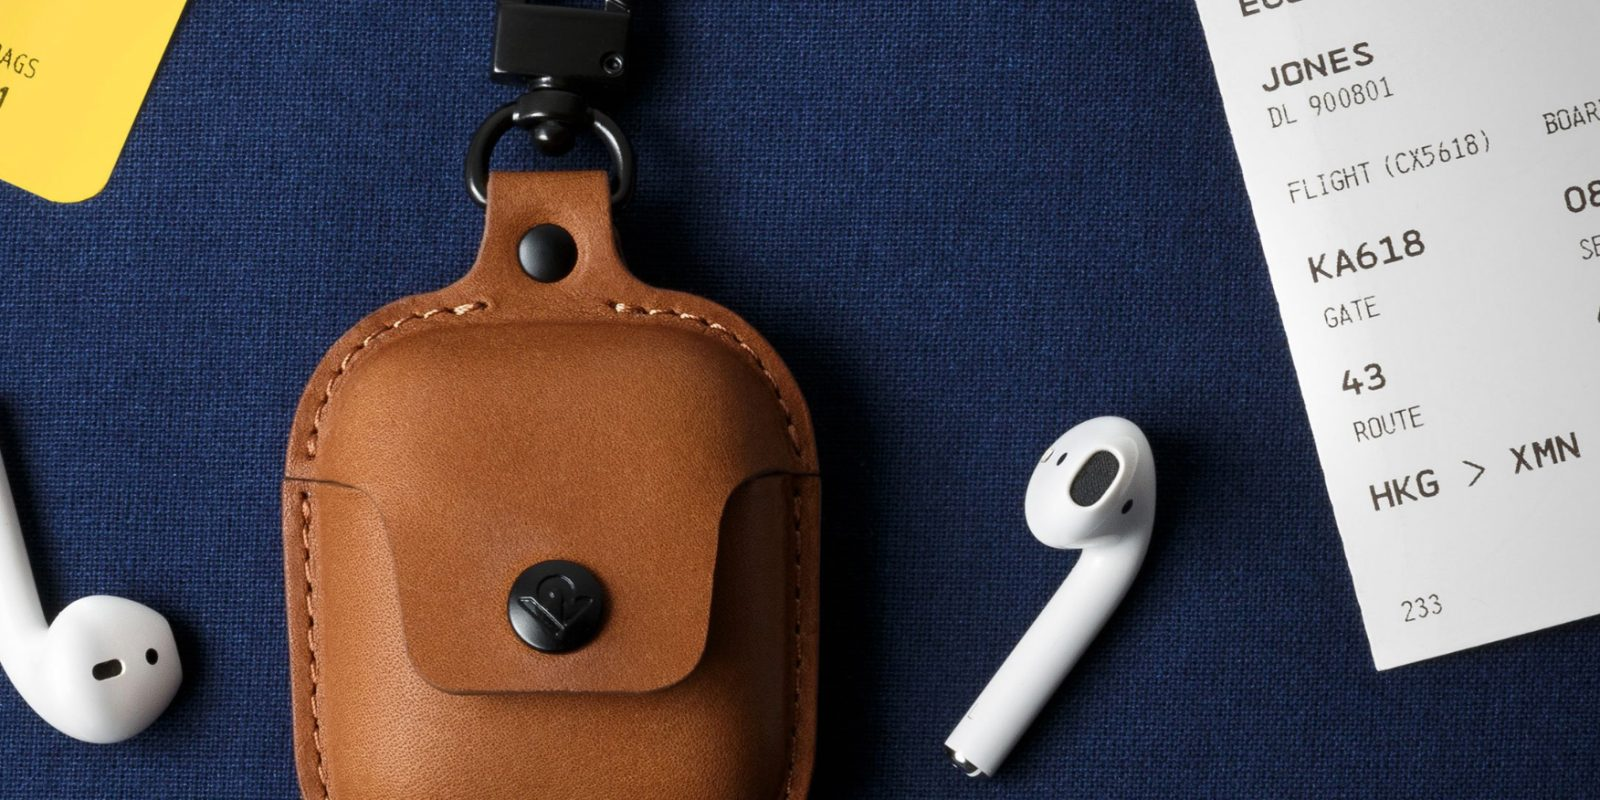 Save 20% sitewide at Twelve South: Rare deals on Mac, iPhone and iPad accessories